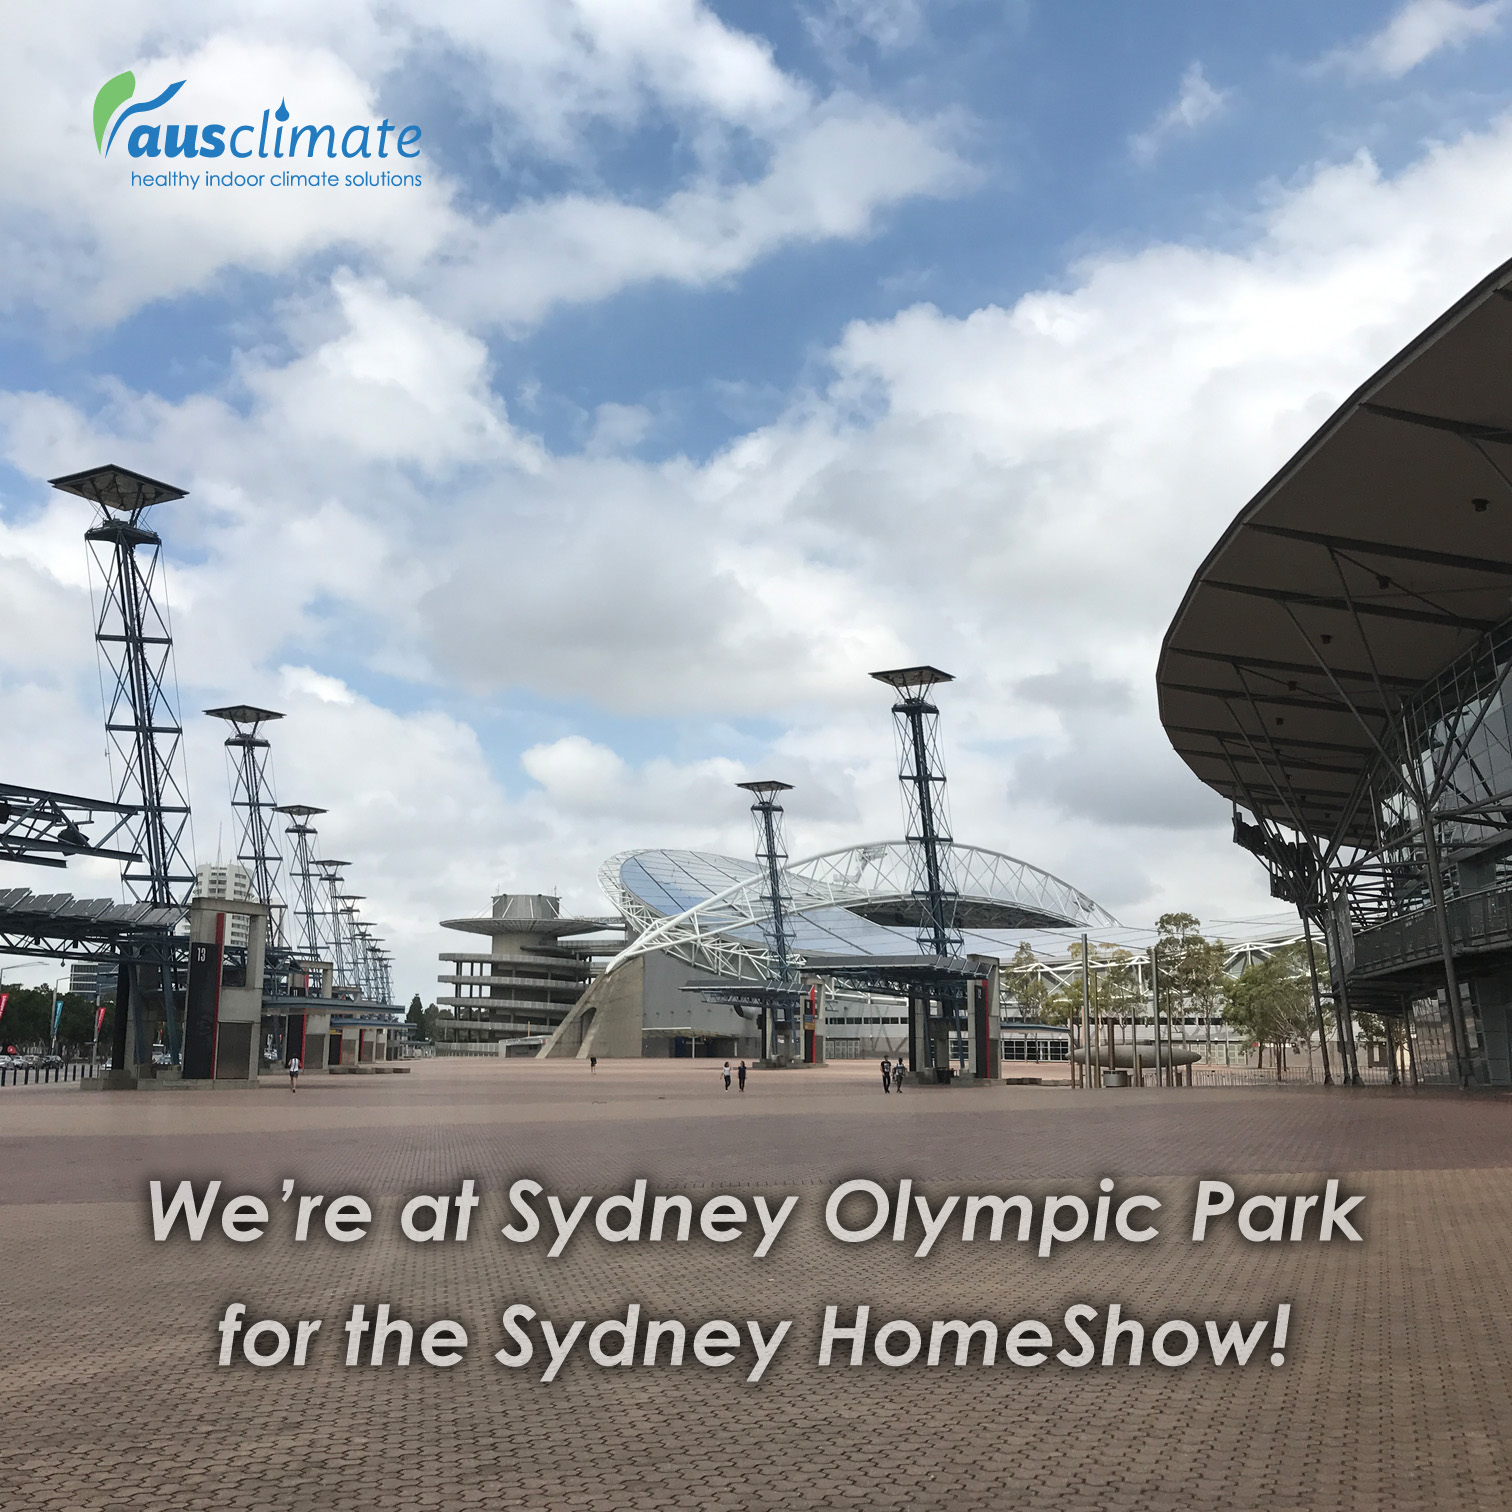 Ausclimate at Sydney Olympic Park